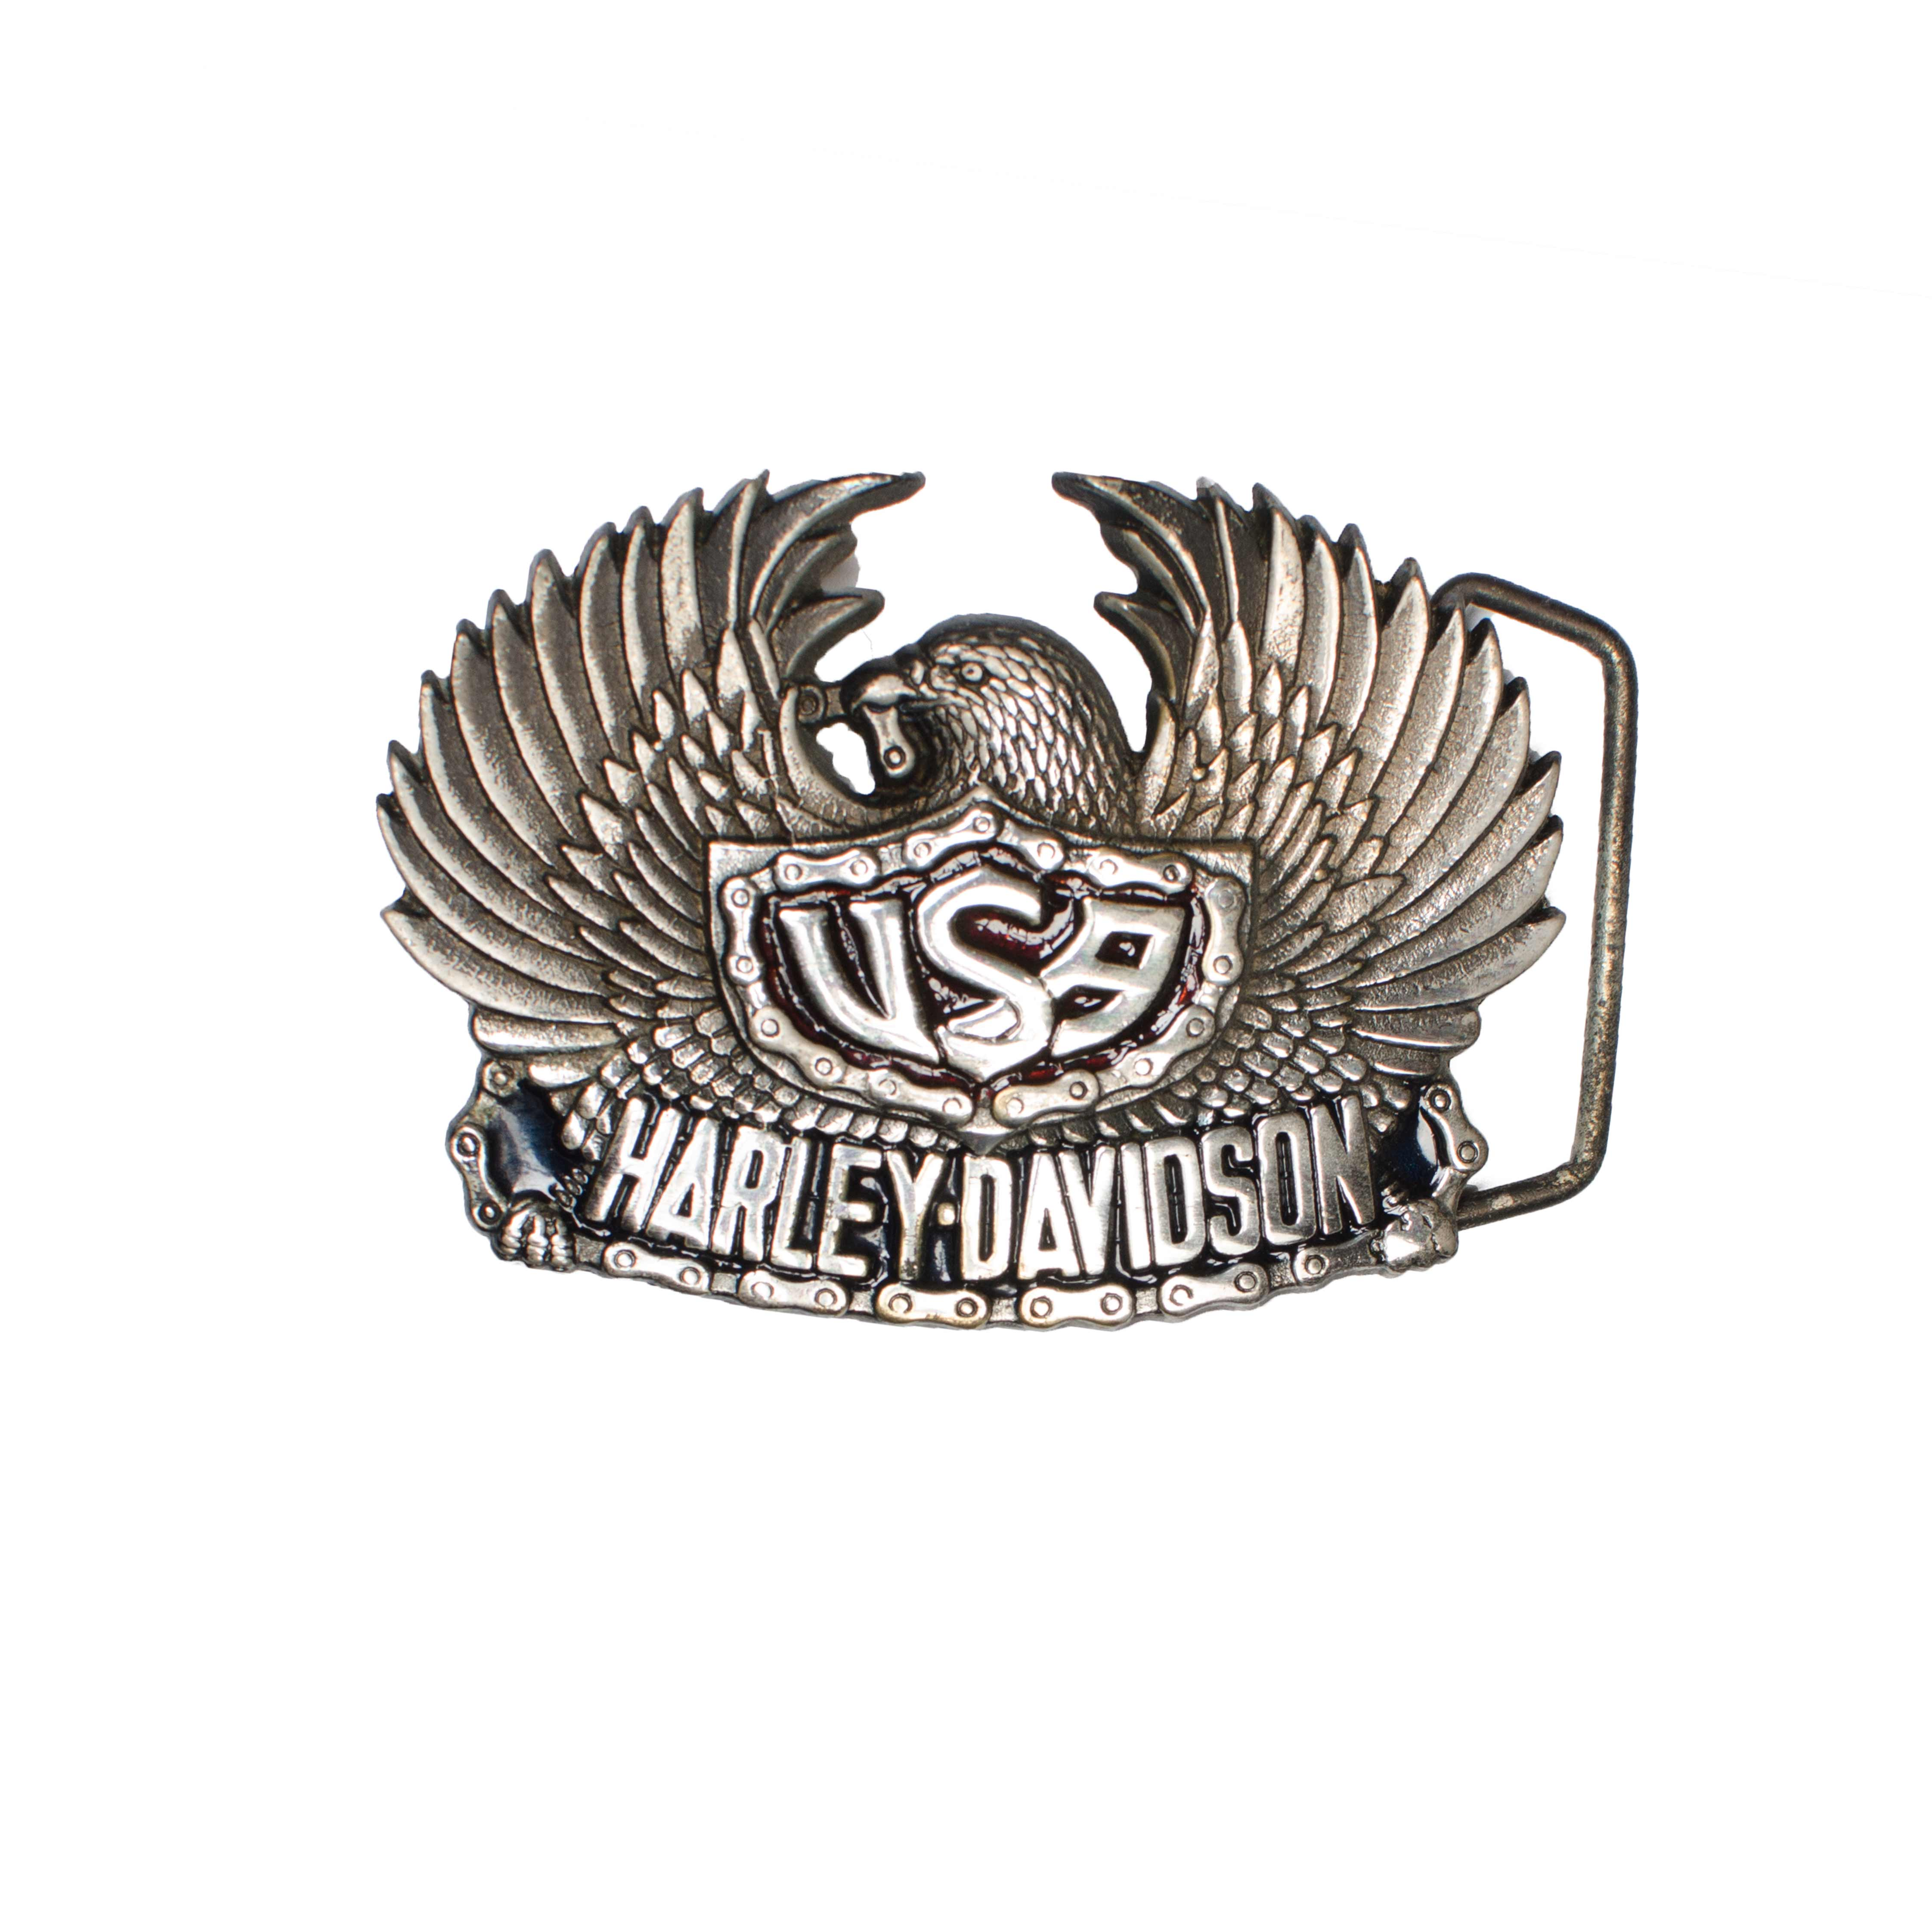 Harley-Davidson H504 USA Eagle Solid Brass Belt Buckle